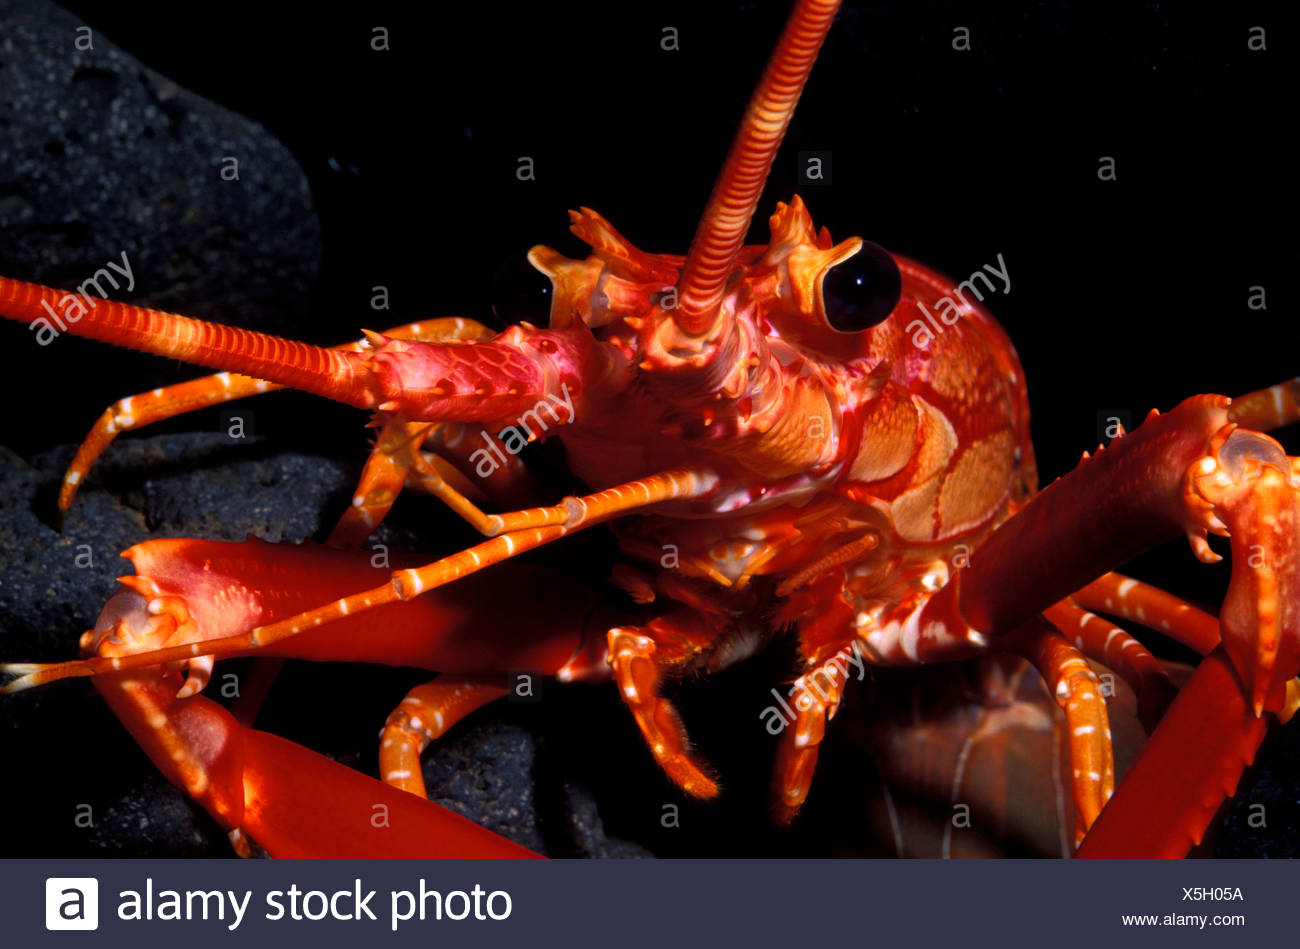 The Hawaiian Lobster (Justitia longimanus). - Stock Image